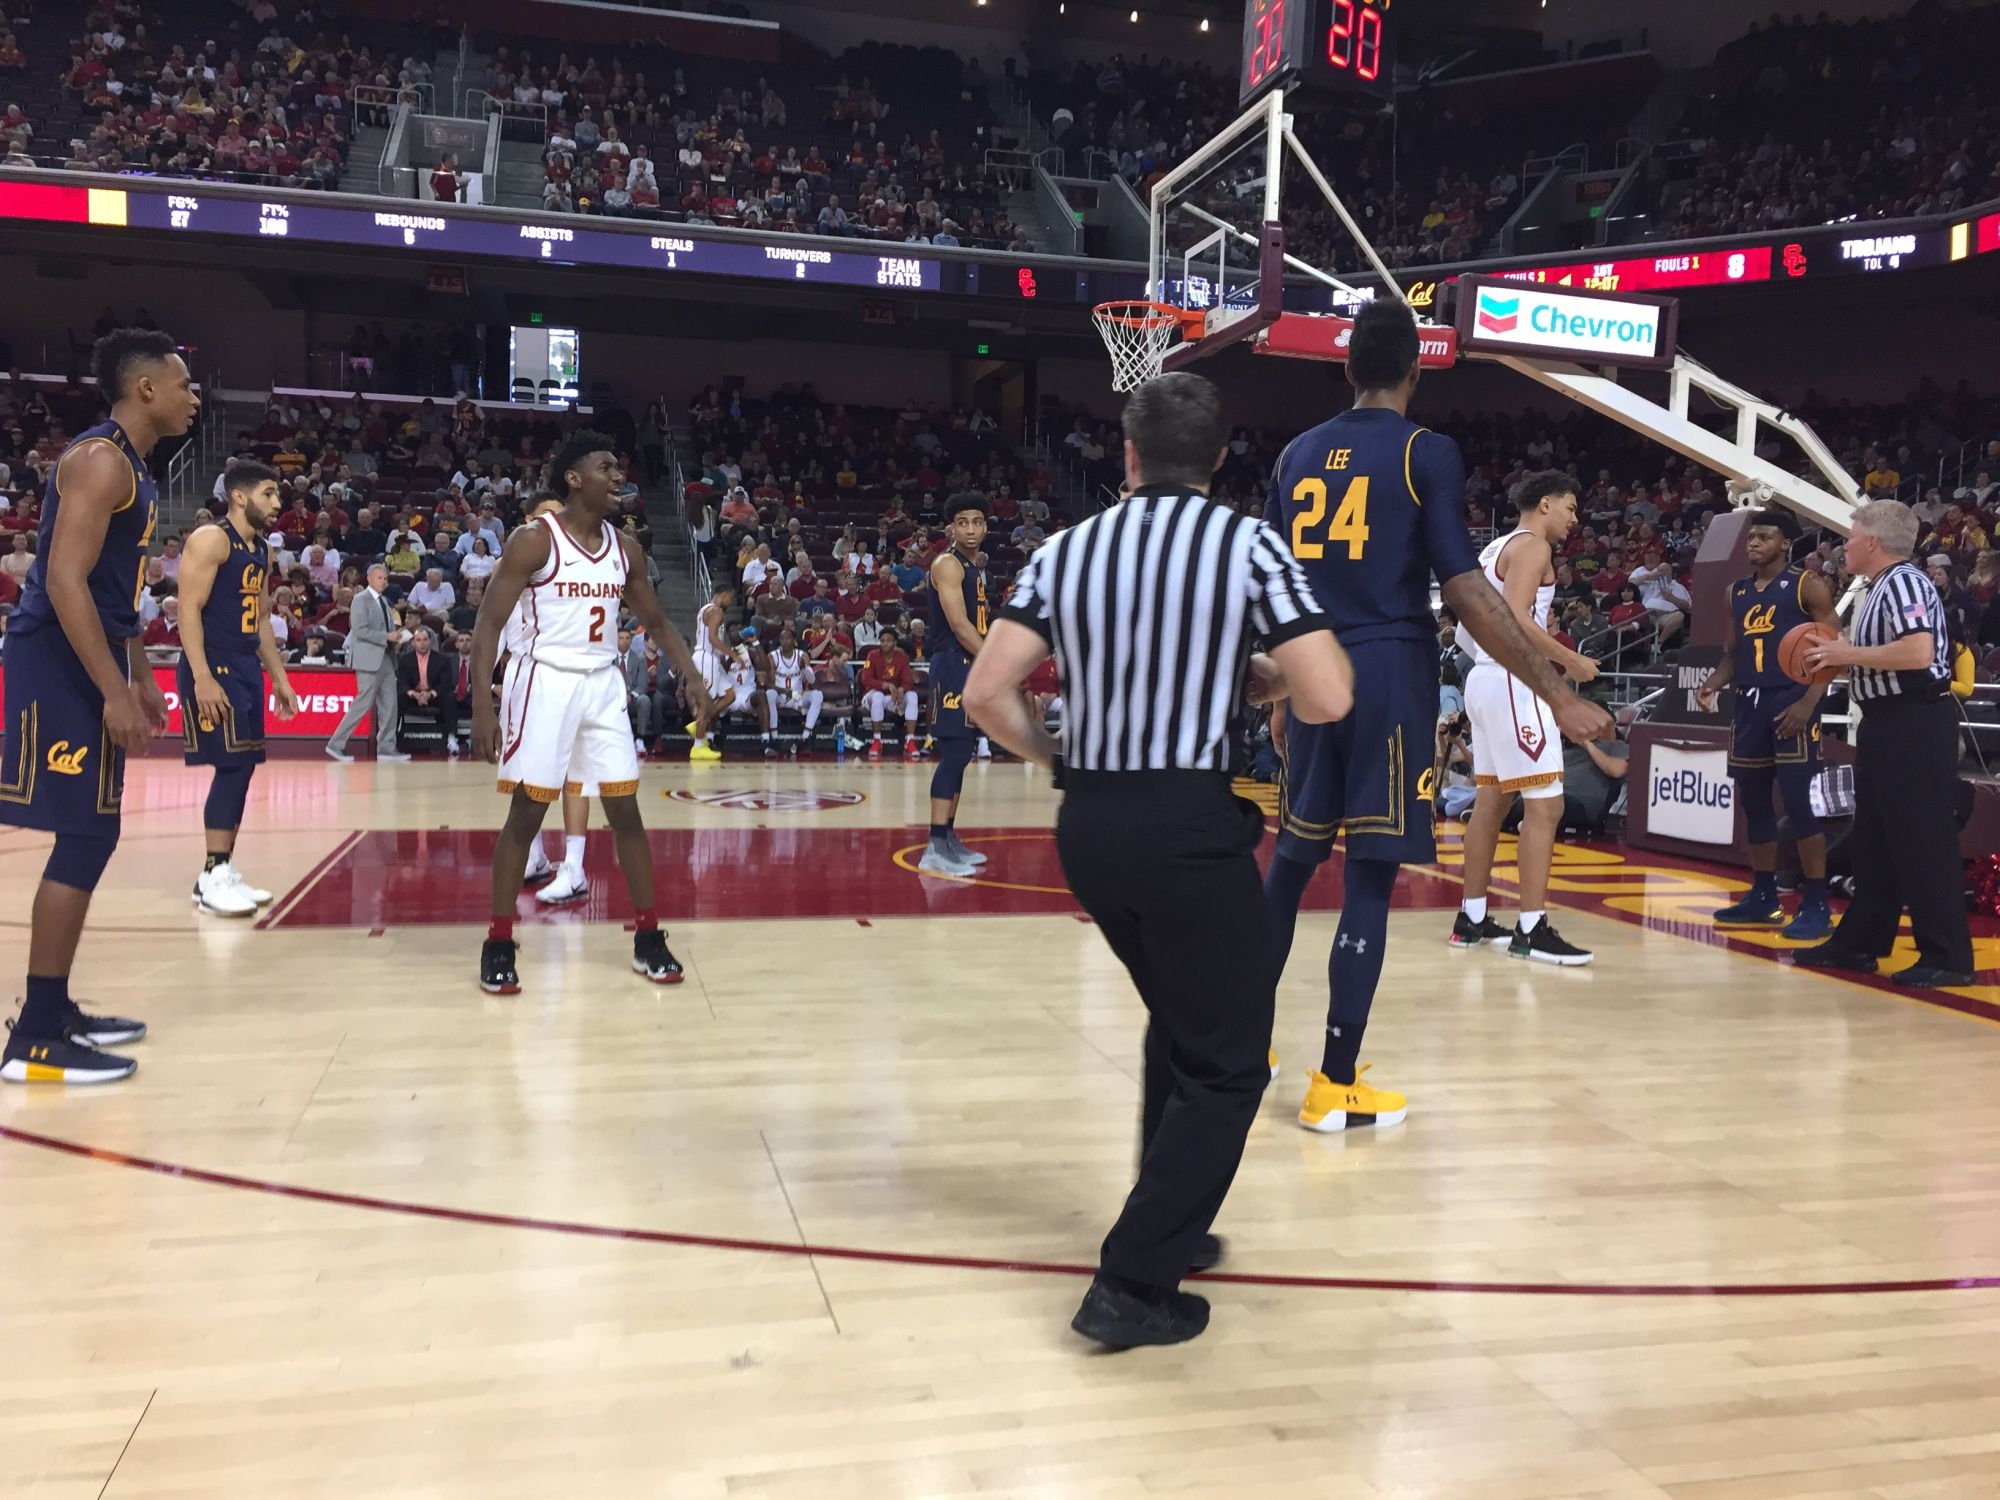 03-Bryan-courtside-USC-Game_1